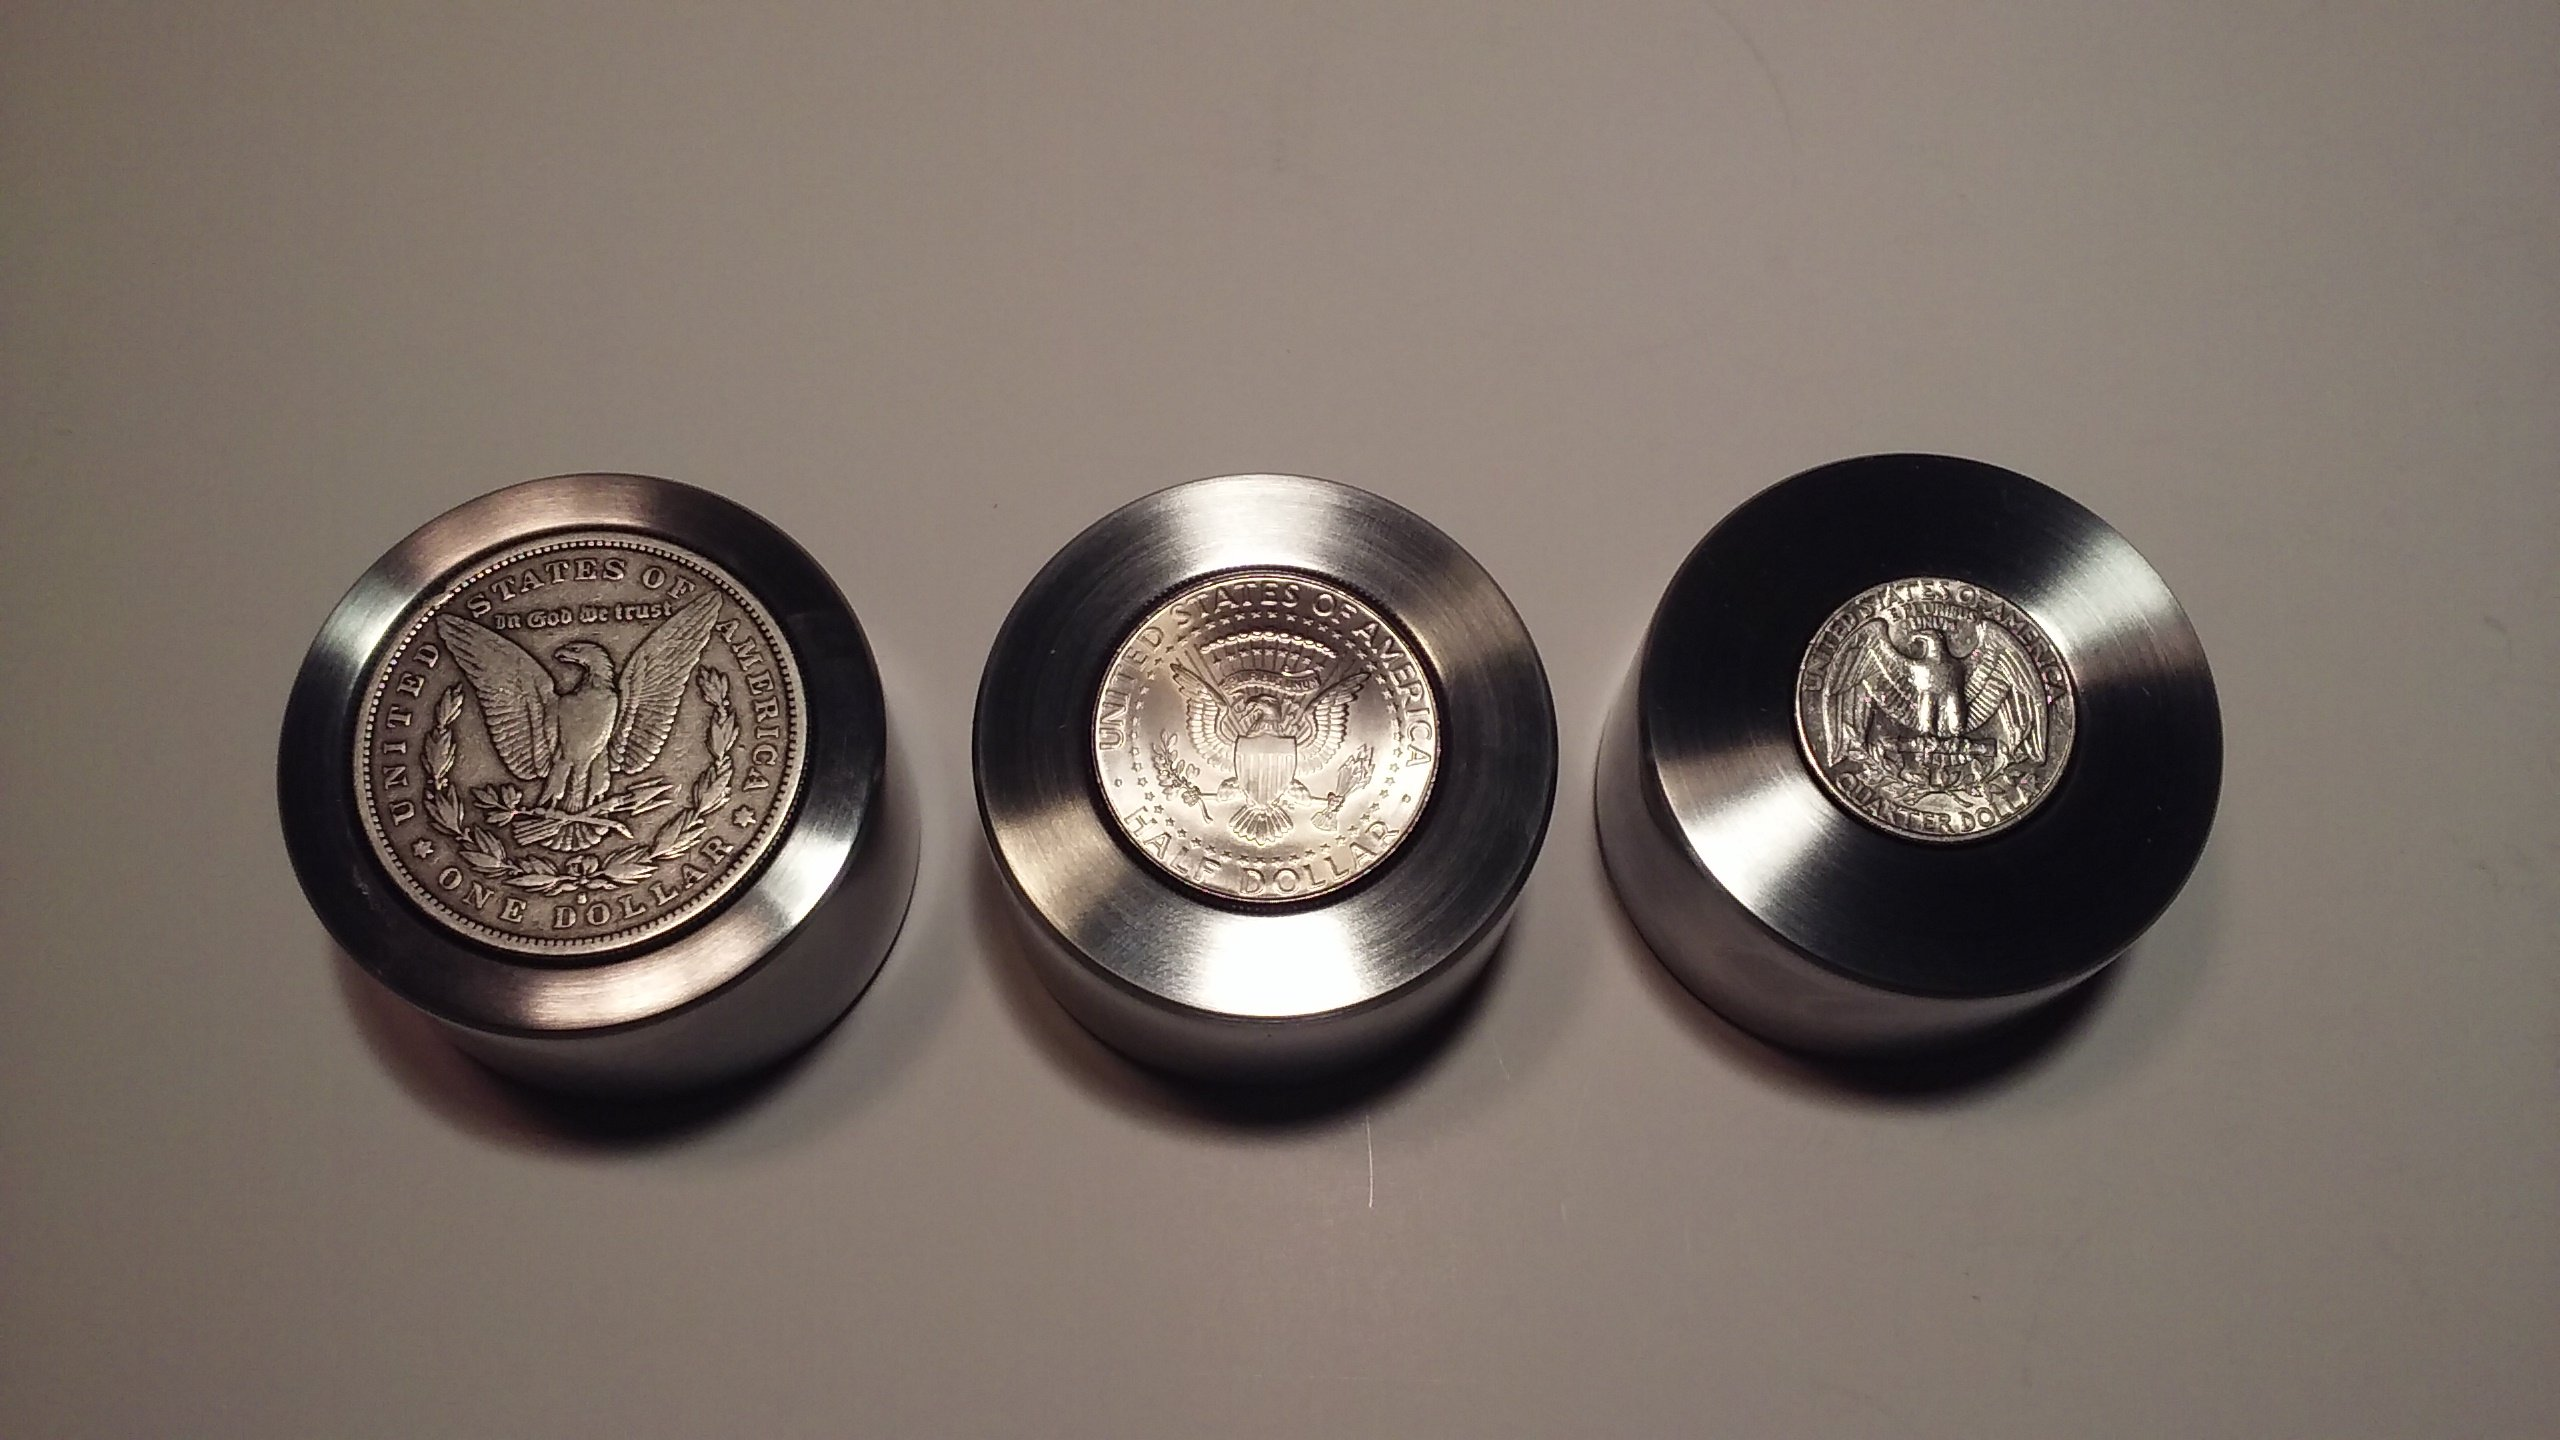 Universal Reduction Die Set For Morgan, 50 Cent. Gold Dollar, Quarter and More!